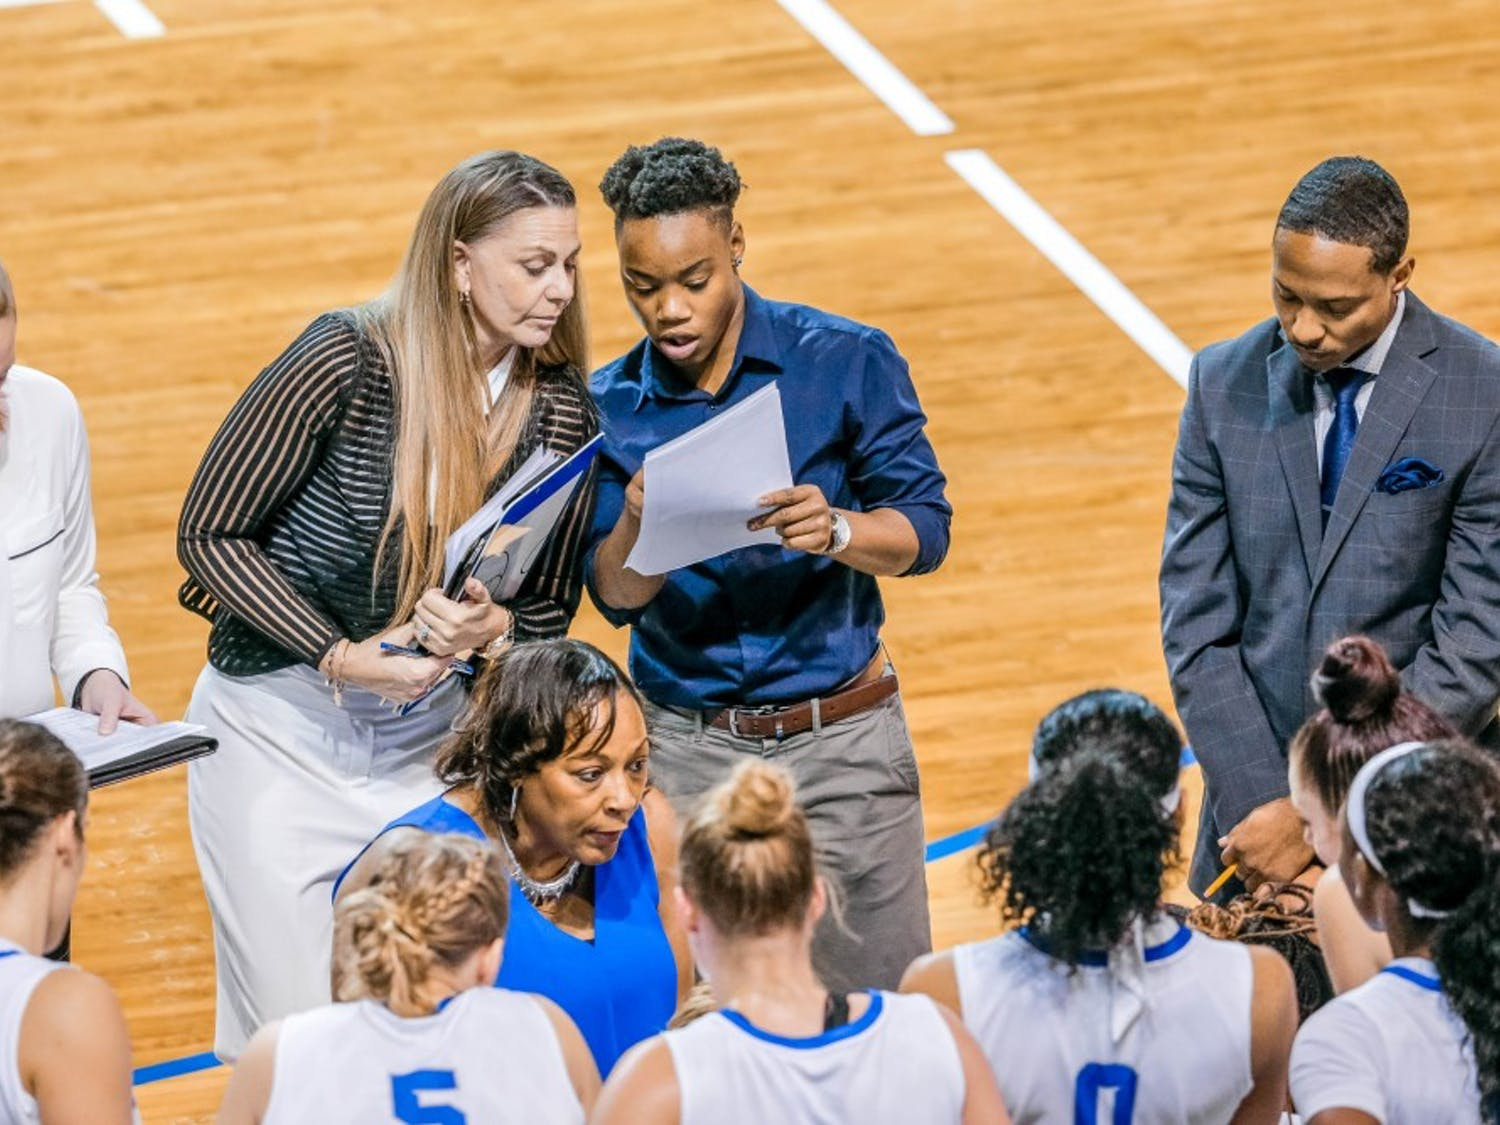 Director of Operations for the women's basketball team Karin Moss works with the team on the sideline. Moss was a member of the 2015-16 MAC Championship season and has now returned to the team for a new staff role.